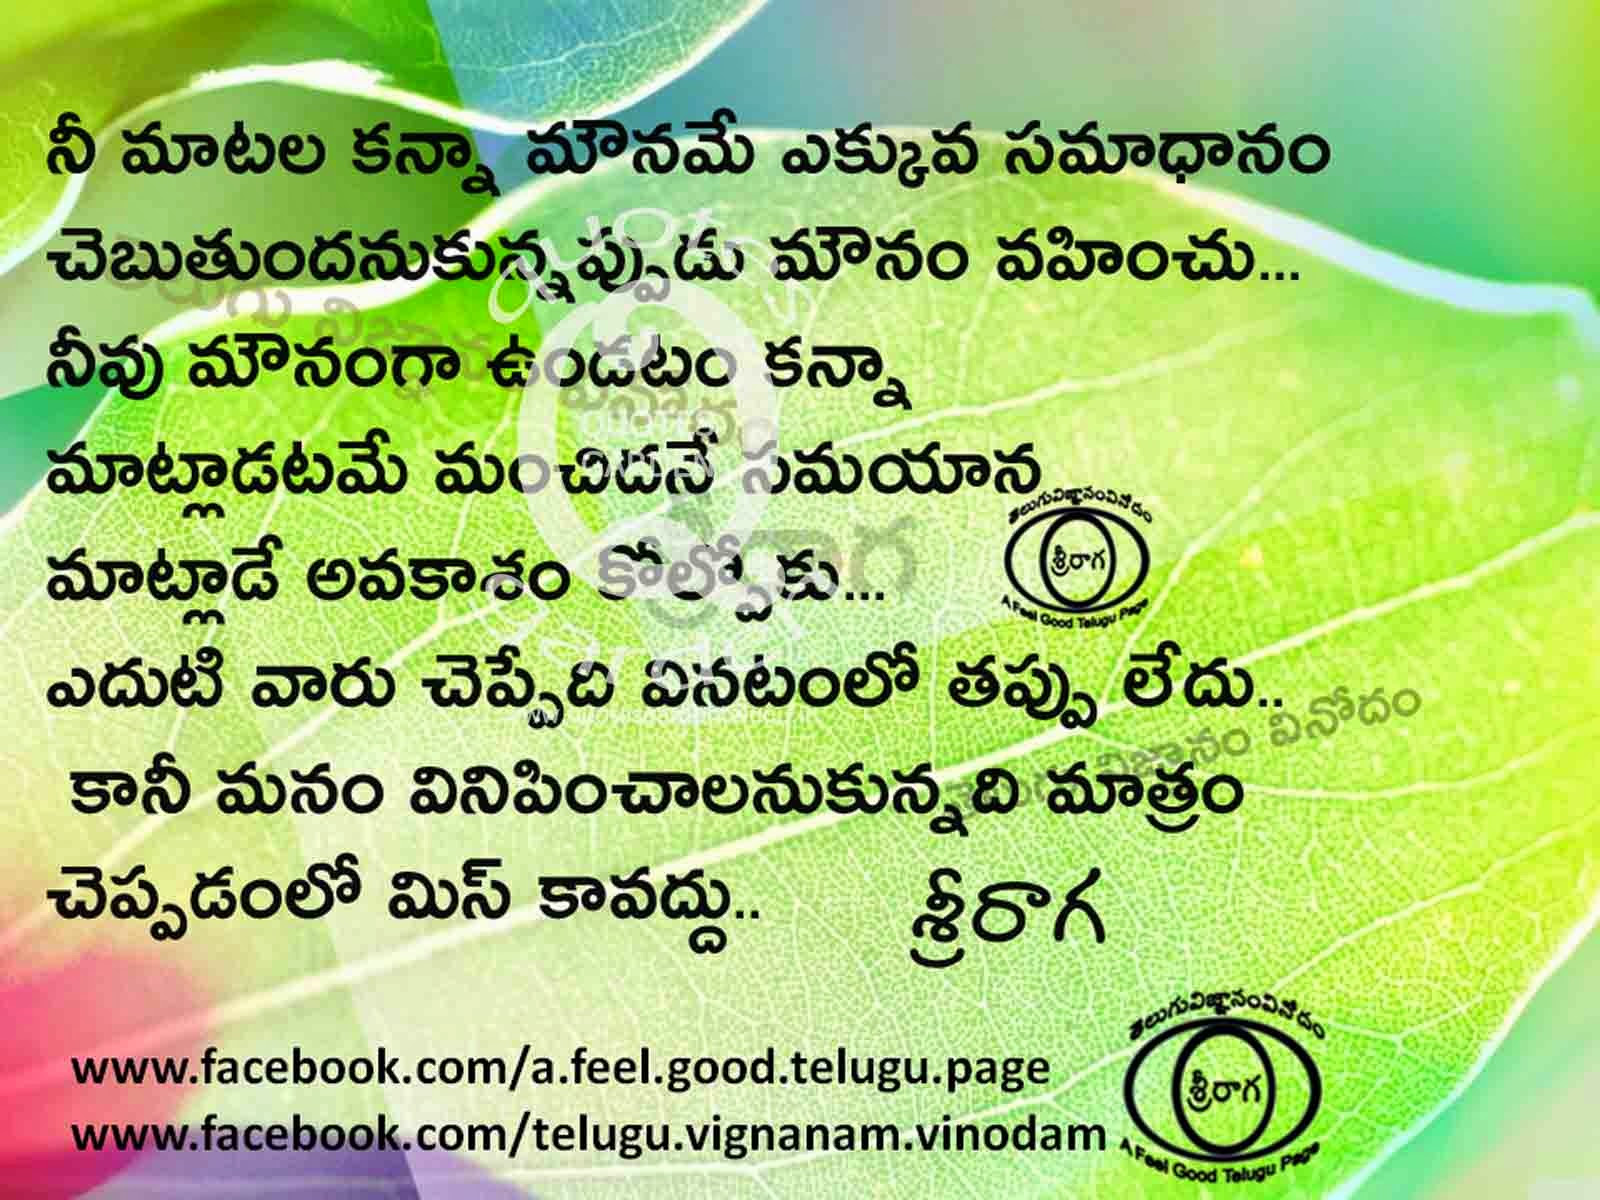 Life Quotes Images For Facebook In Telugu Imaganationfaceorg